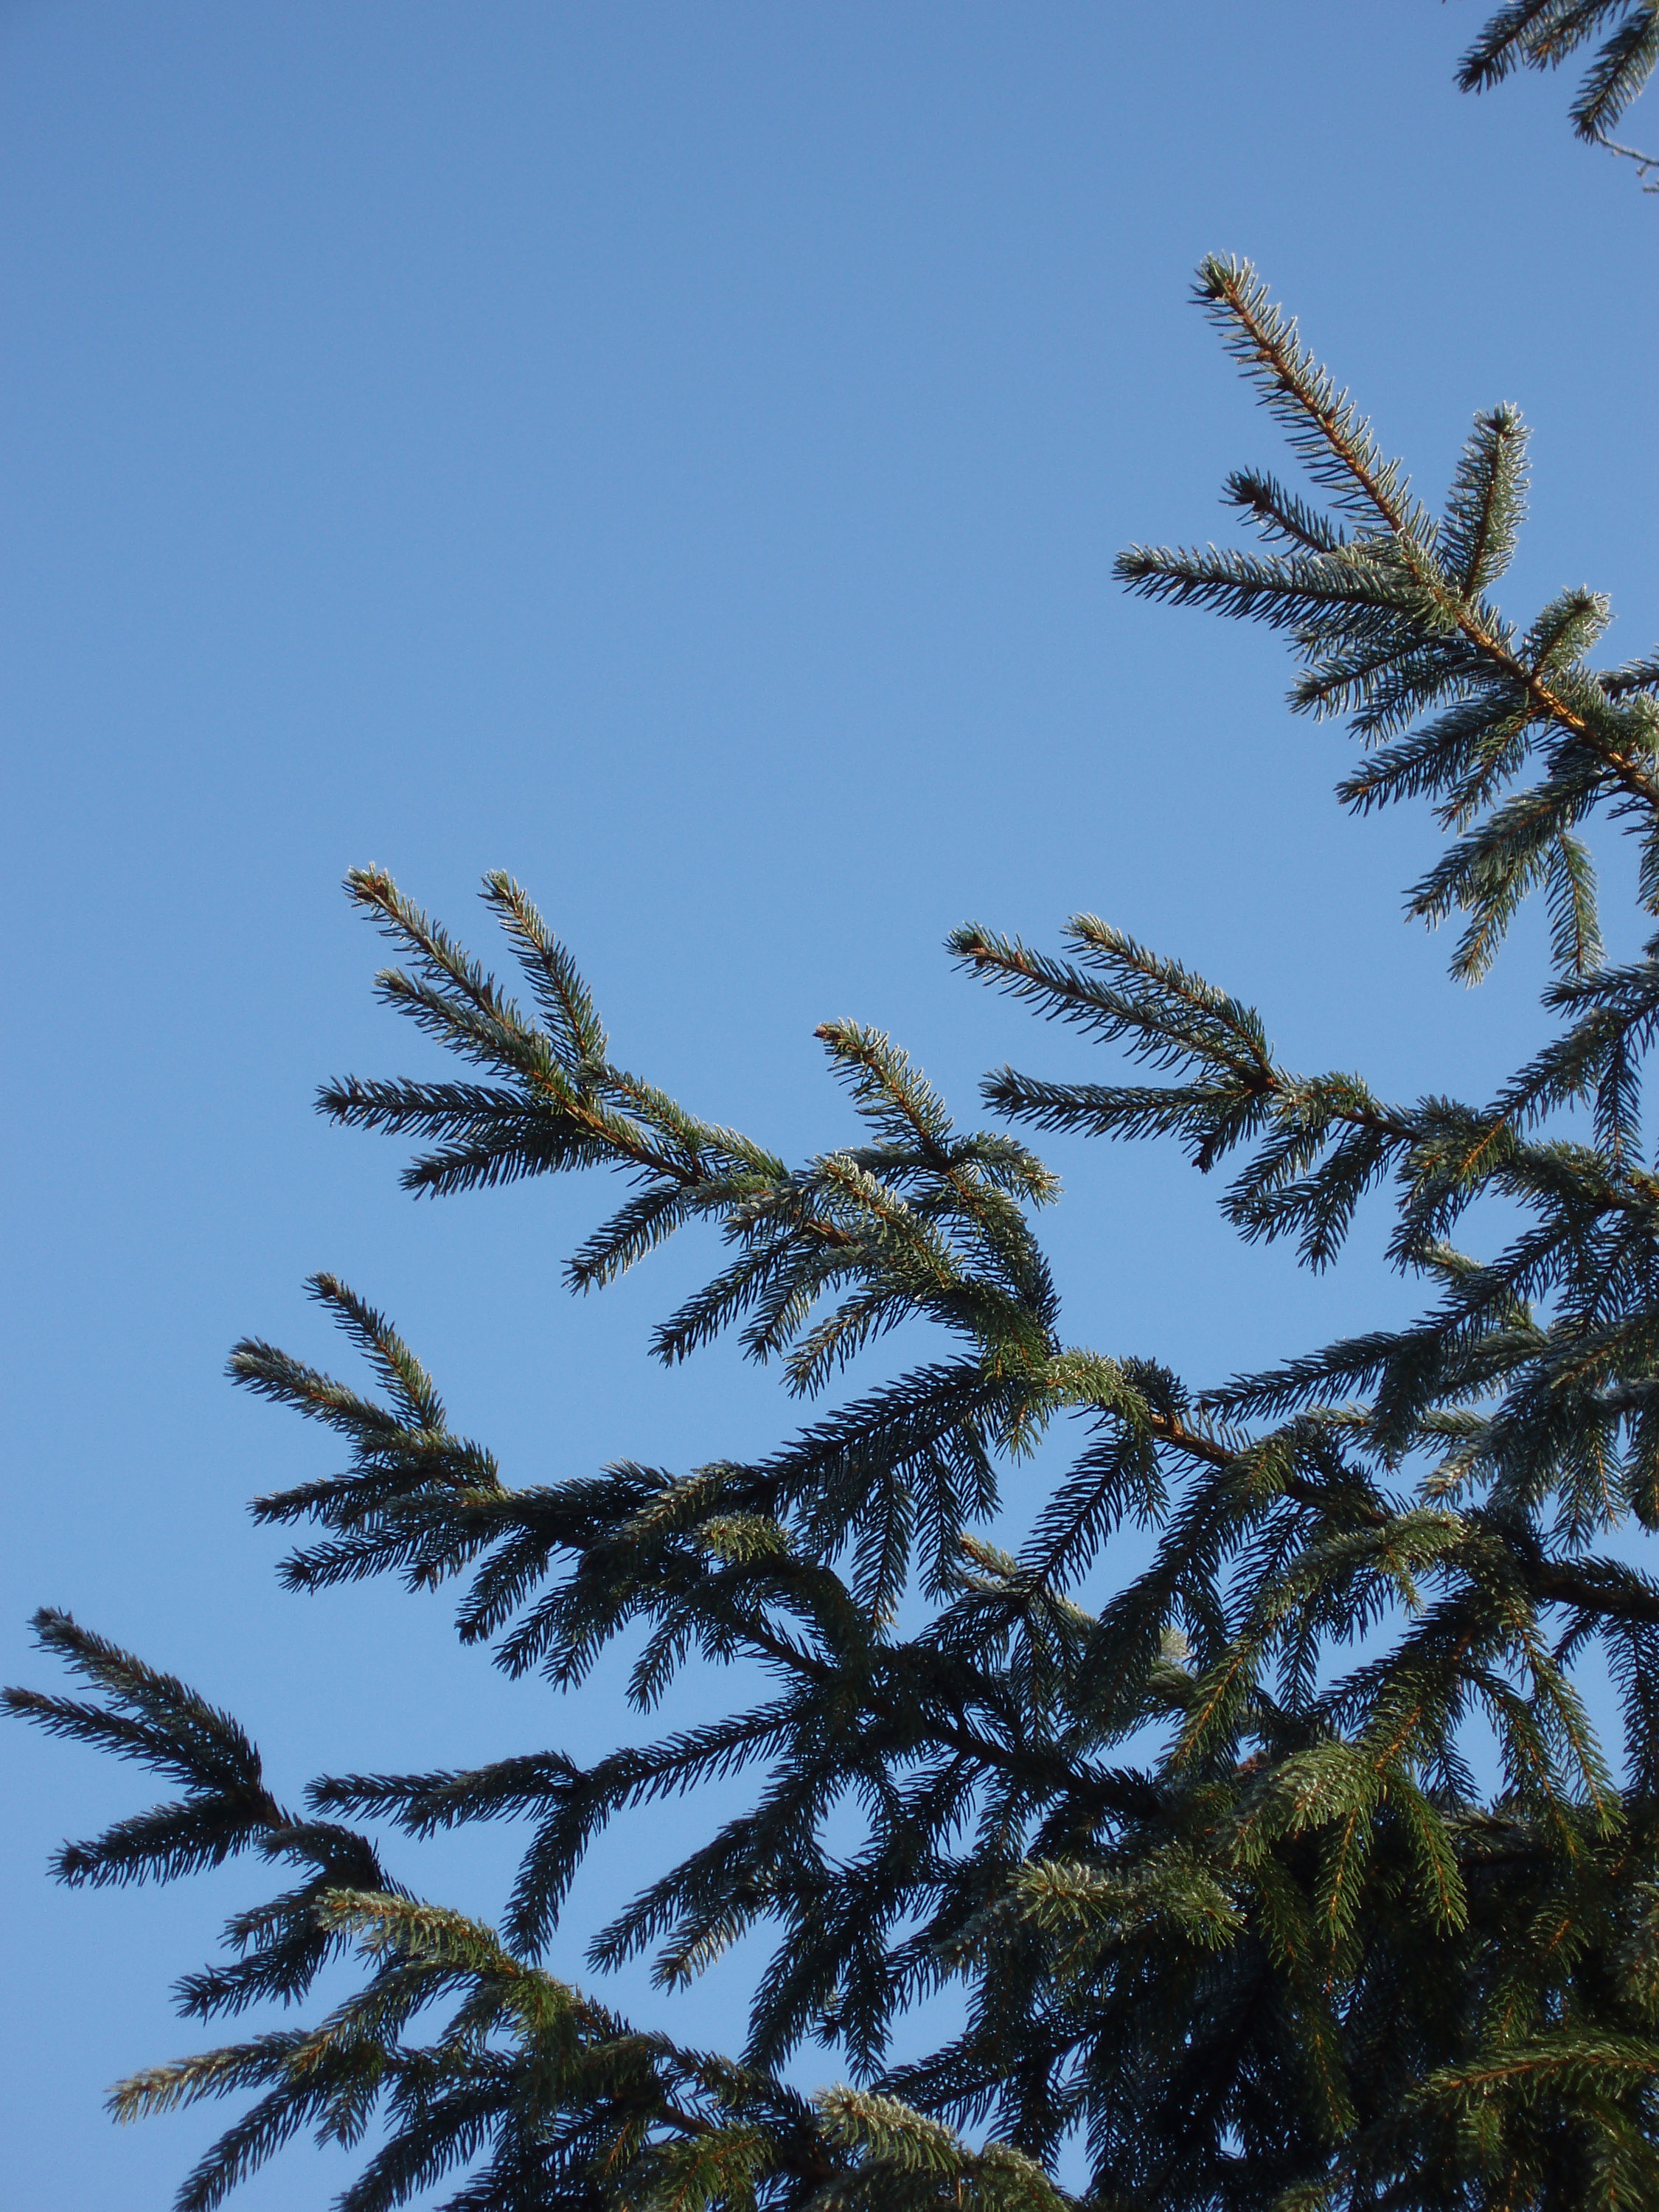 a pine tree outdoor, ready to be chopped down for christmas?